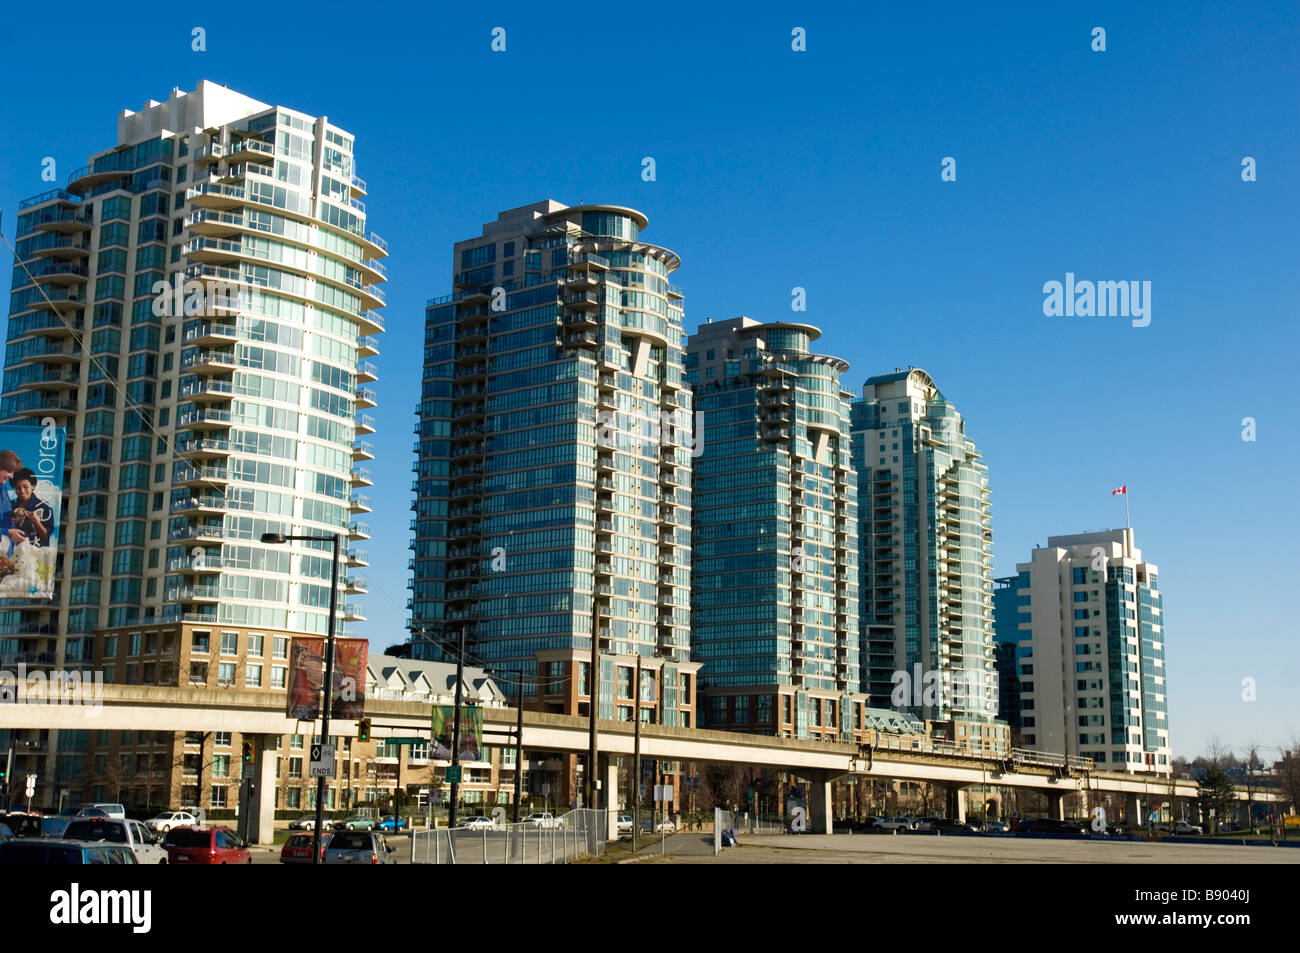 Condominium towers in Vancouver - Stock Image